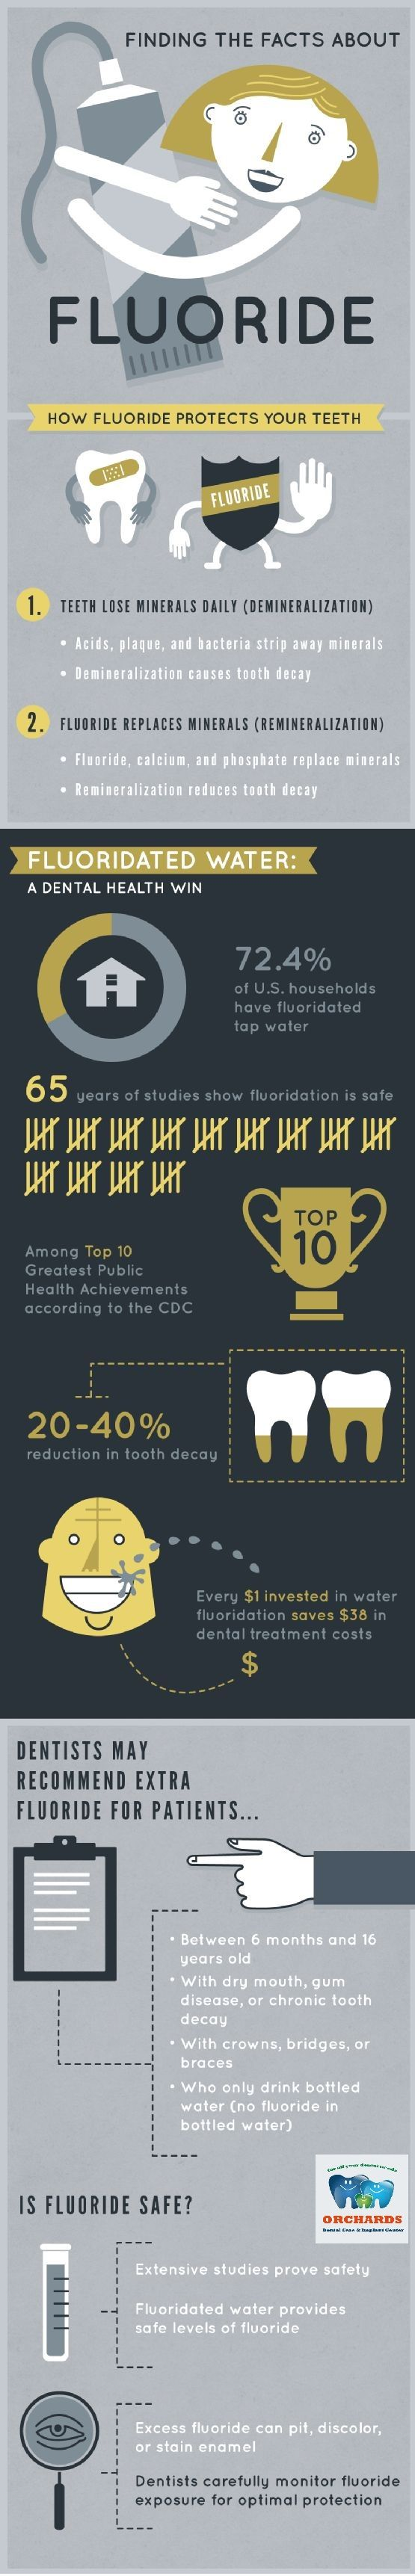 #ODC_tips Fluoride helps prevent tooth decay by making the tooth more resistant to acid attacks from plaque bacteria and sugars in the mouth. It also reverses early decay. In children under 6 years of age, fluoride becomes incorporated into the development of permanent teeth, making it difficult for acids to demineralize the teeth. Fluoride also helps speed remineralization as well as disrupts acid production in already erupted teeth of both children and adults.